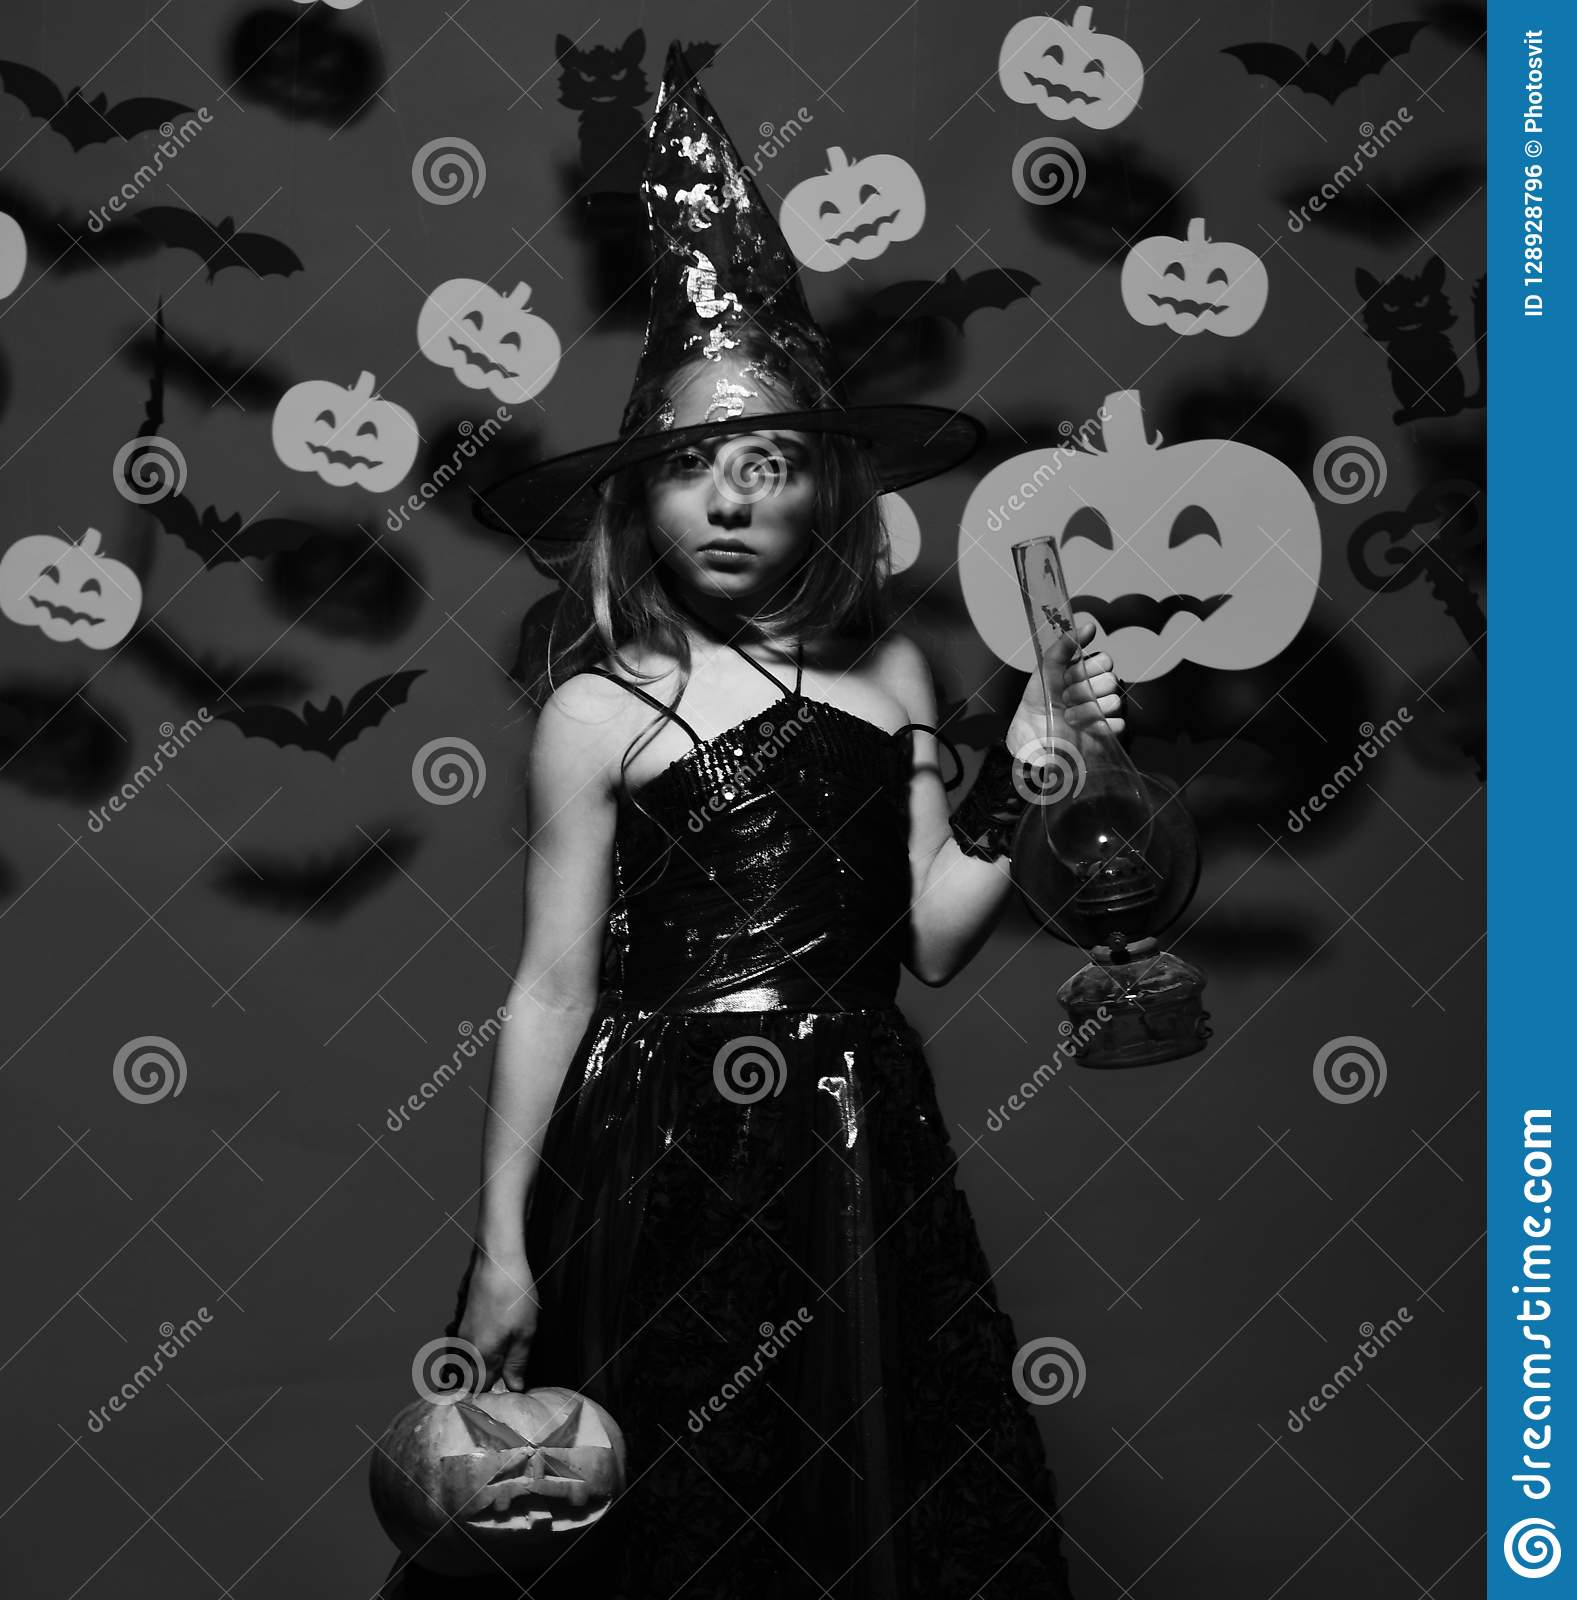 Halloween party and decorations concept. Kid in spooky witches costume